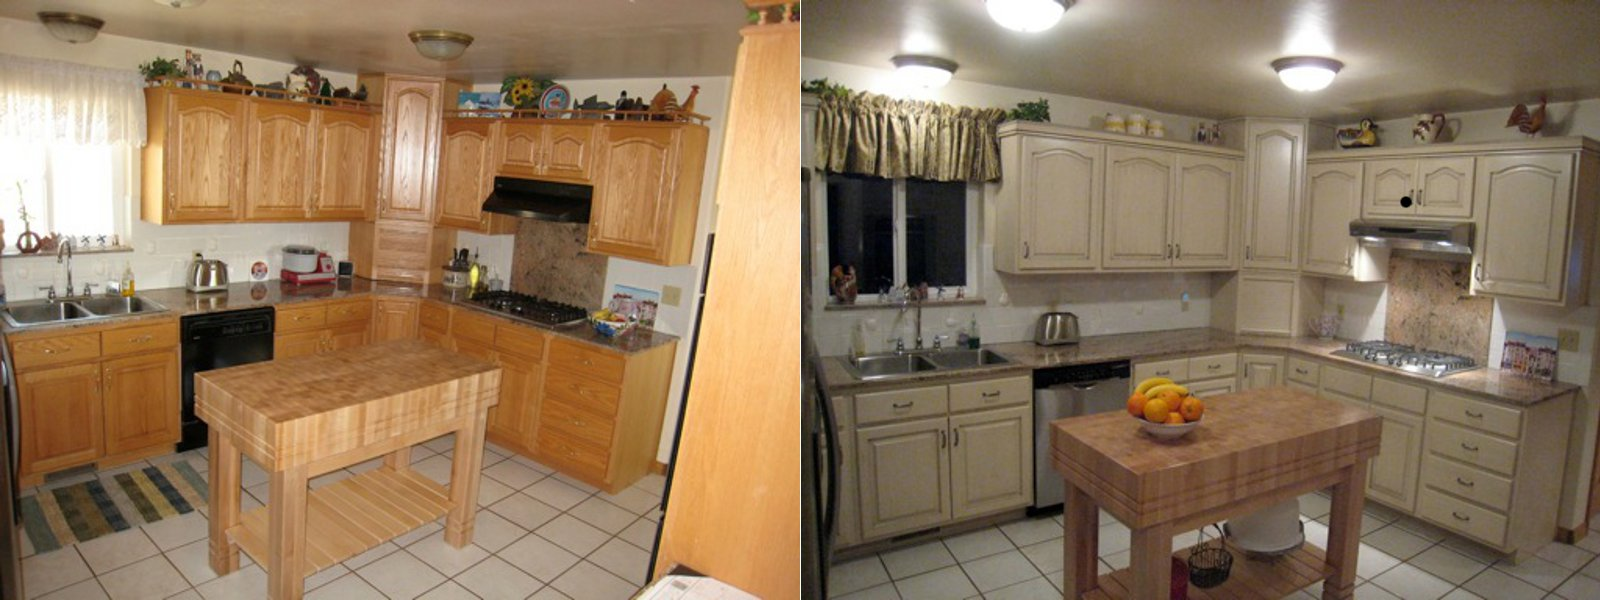 before and after telisa s furniture and cabinet techniques in creating refinished kitchen cabinets before